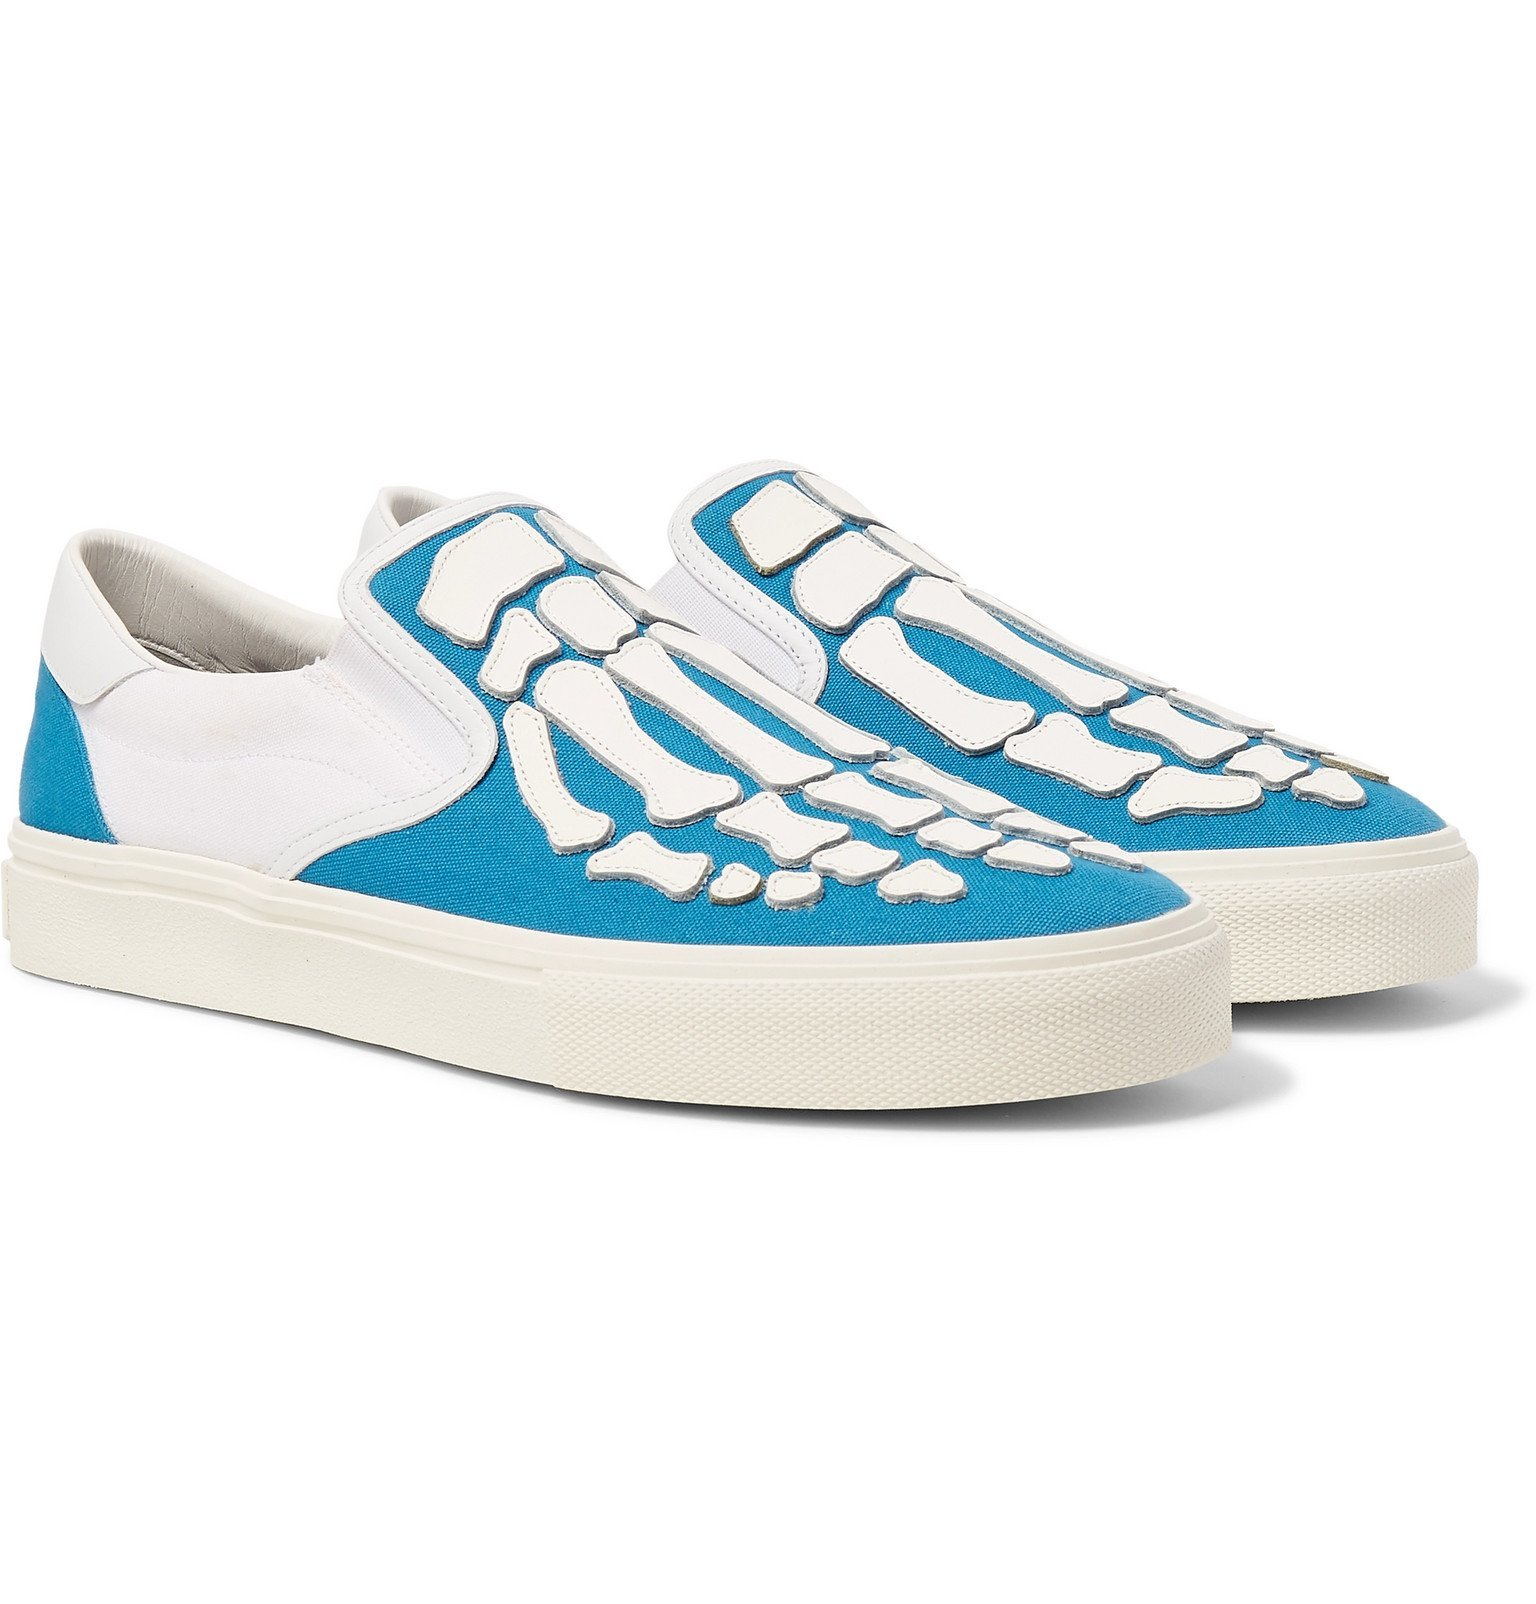 Photo: AMIRI - Skel Toe Leather-Appliquéd Canvas Slip-On Sneakers - Blue